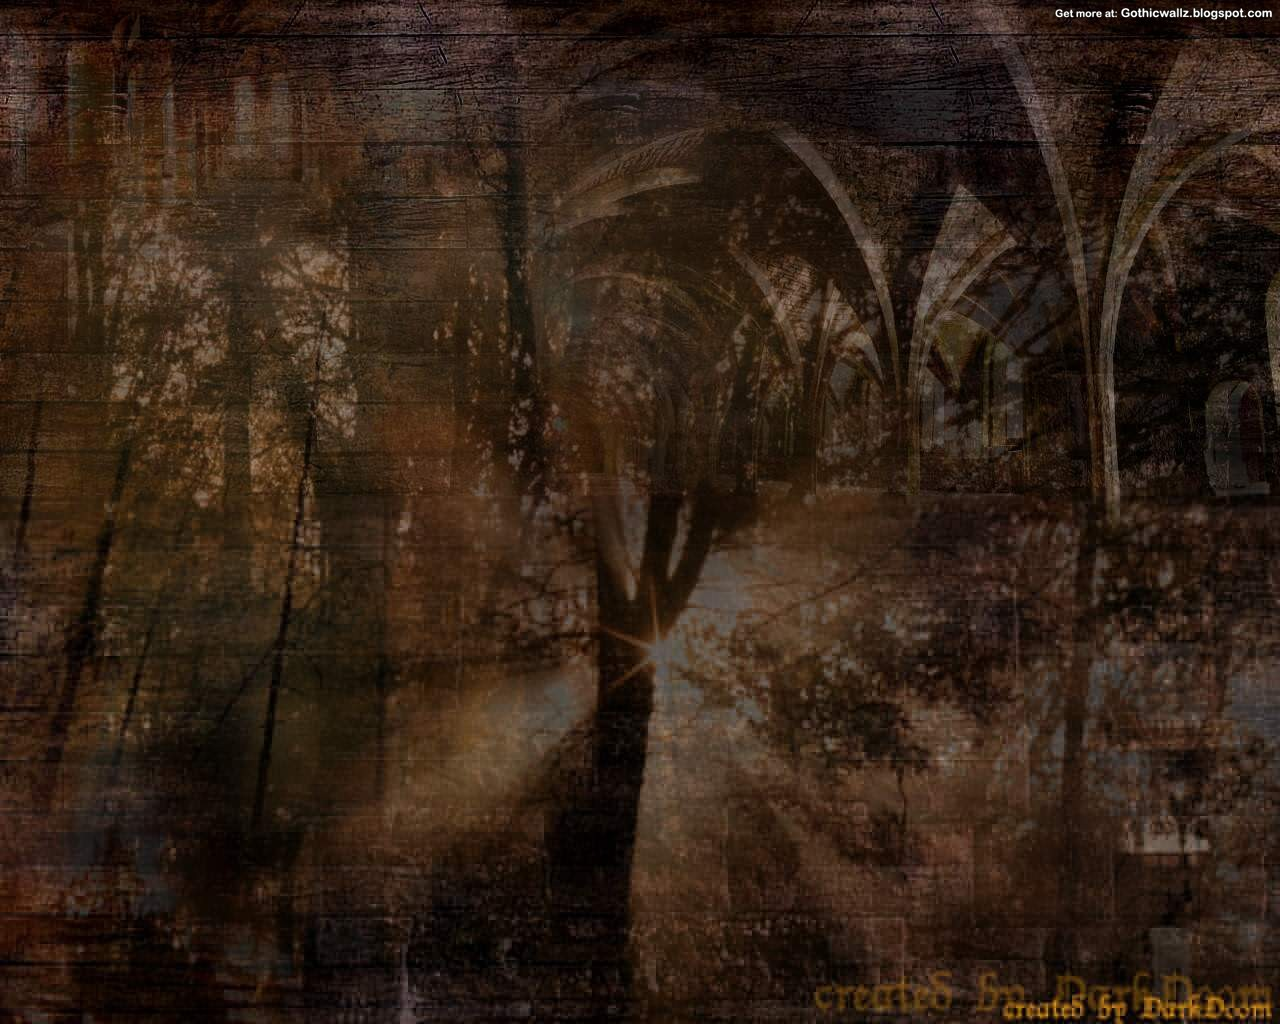 wallpaper layer forest gothic background gothicwallz right jo2zcyhkayGothic Forest Backgrounds